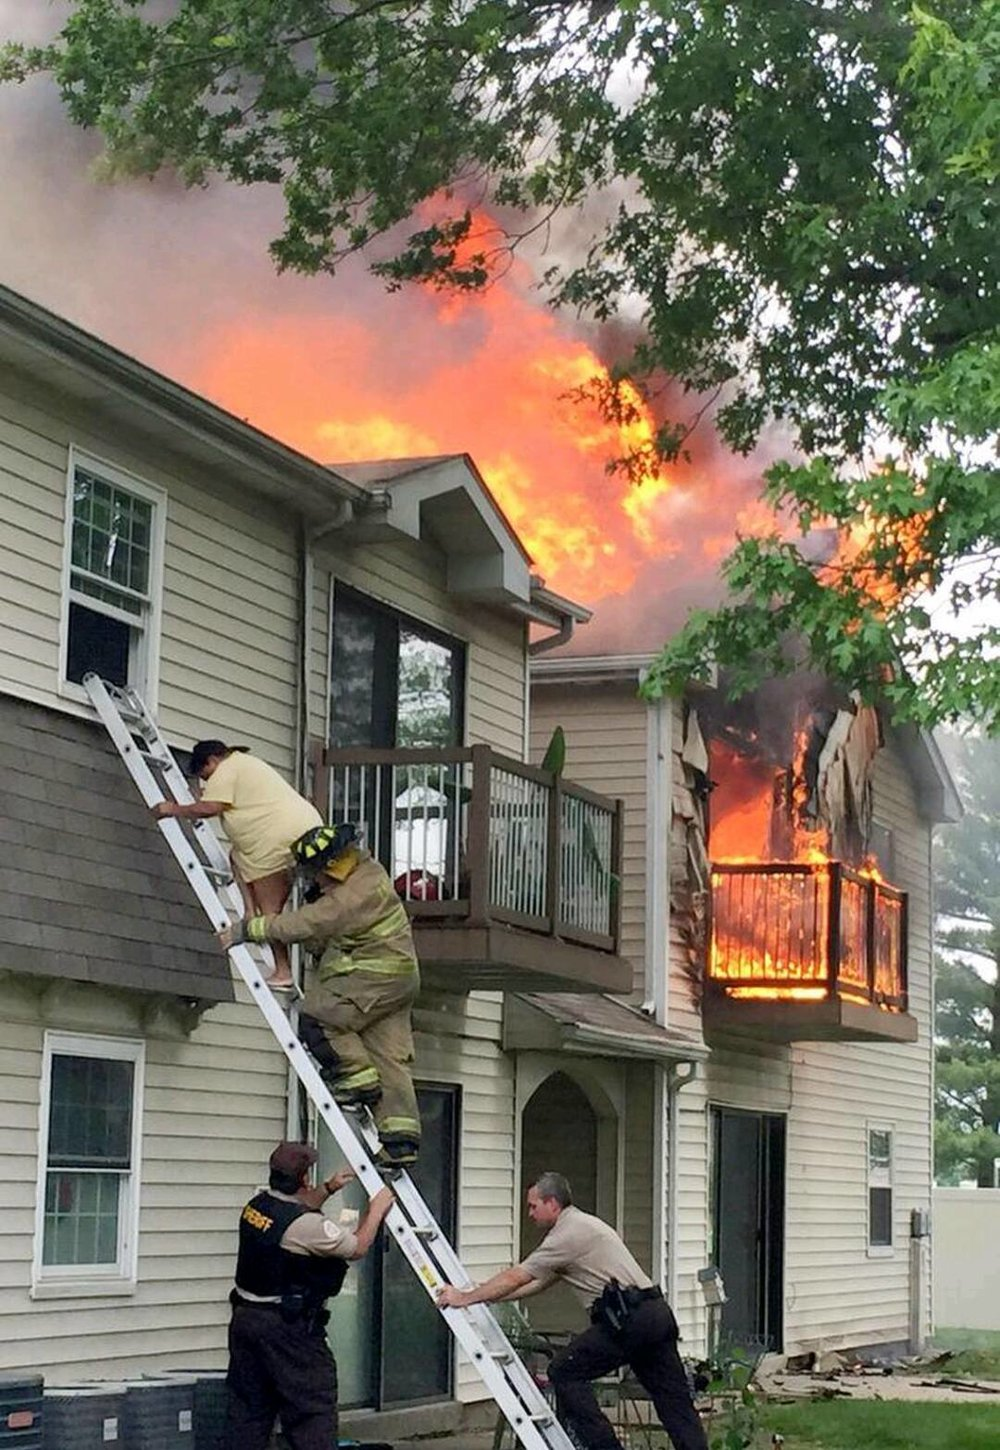 On 24 May 2015, ESFD firefighters responded to a fire in a 16-unit apartment complex. Several trapped residents were rescued, and the fire was stopped before it could spread to the entire building.Photo Credit: Belleville News Democrat